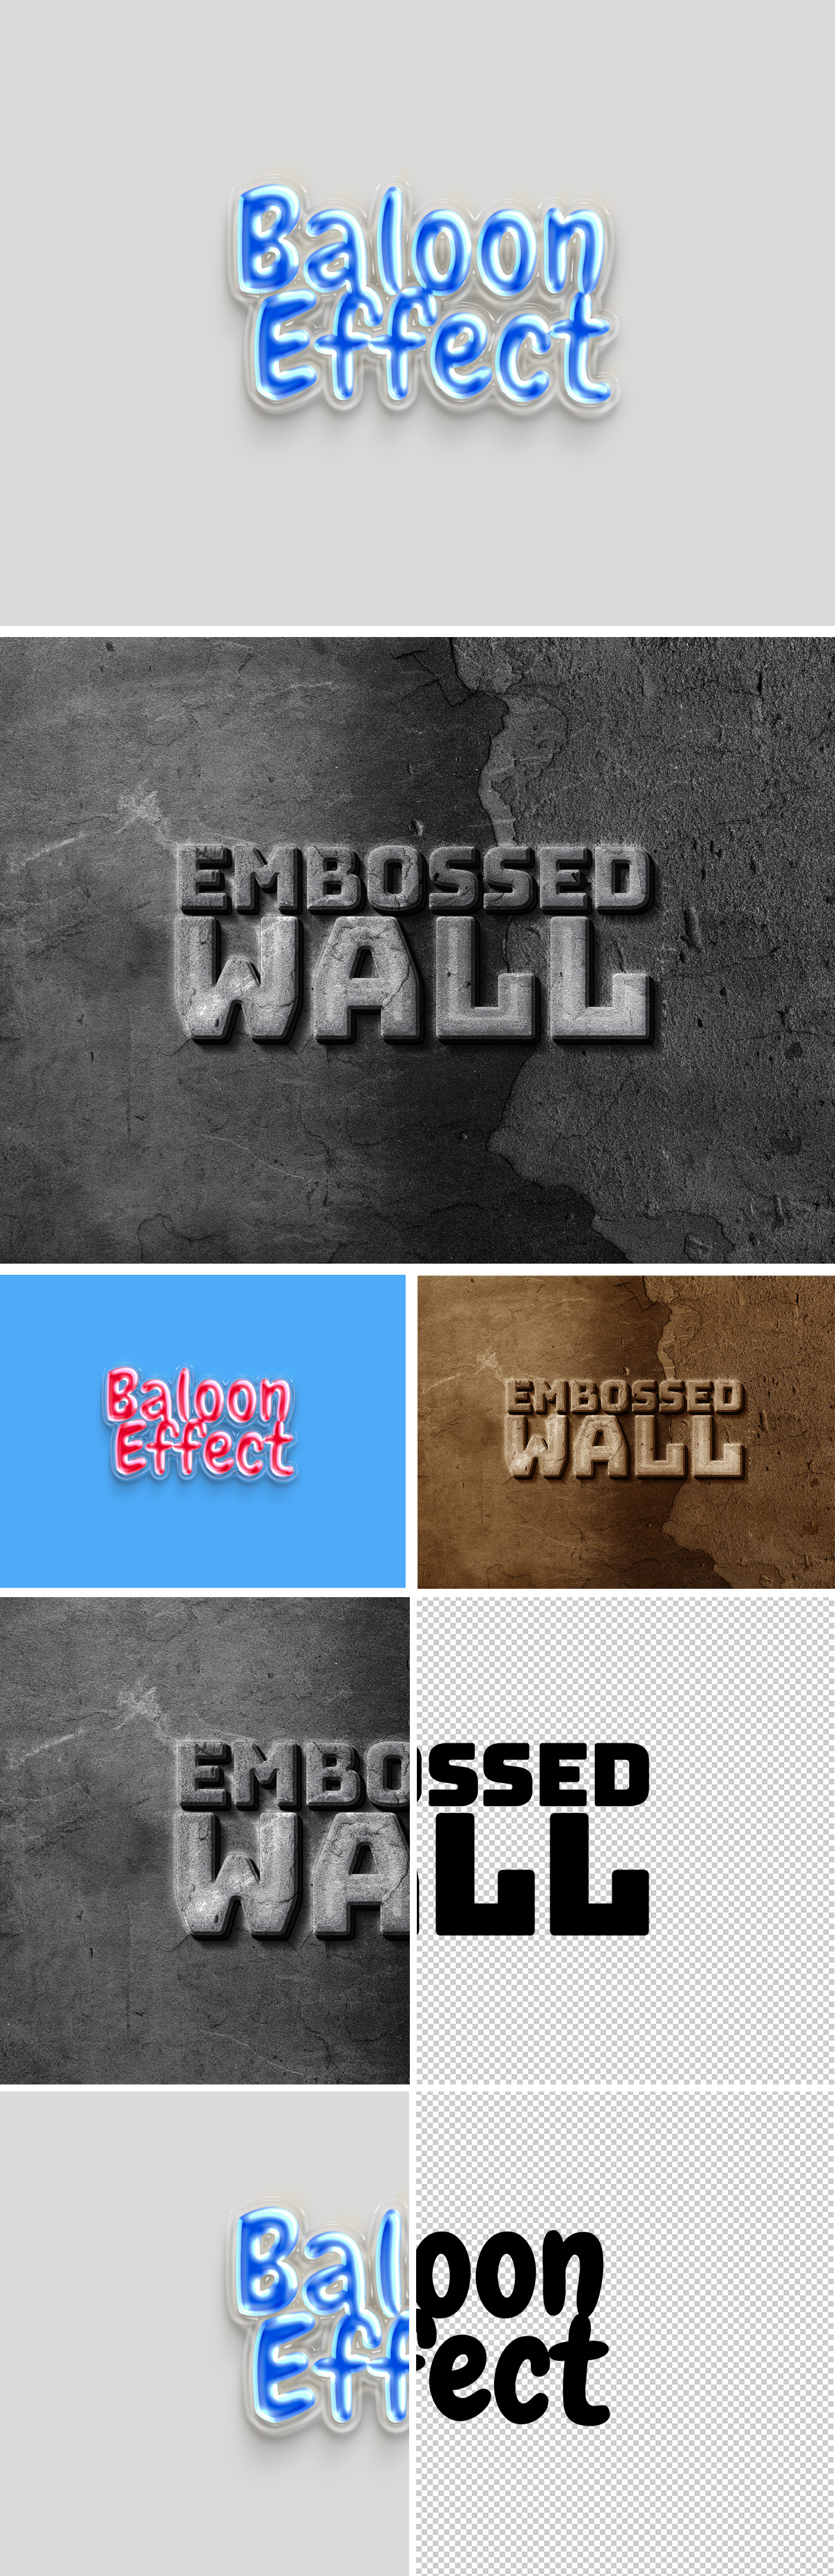 Balloon And  Embossed Wall Text Effects